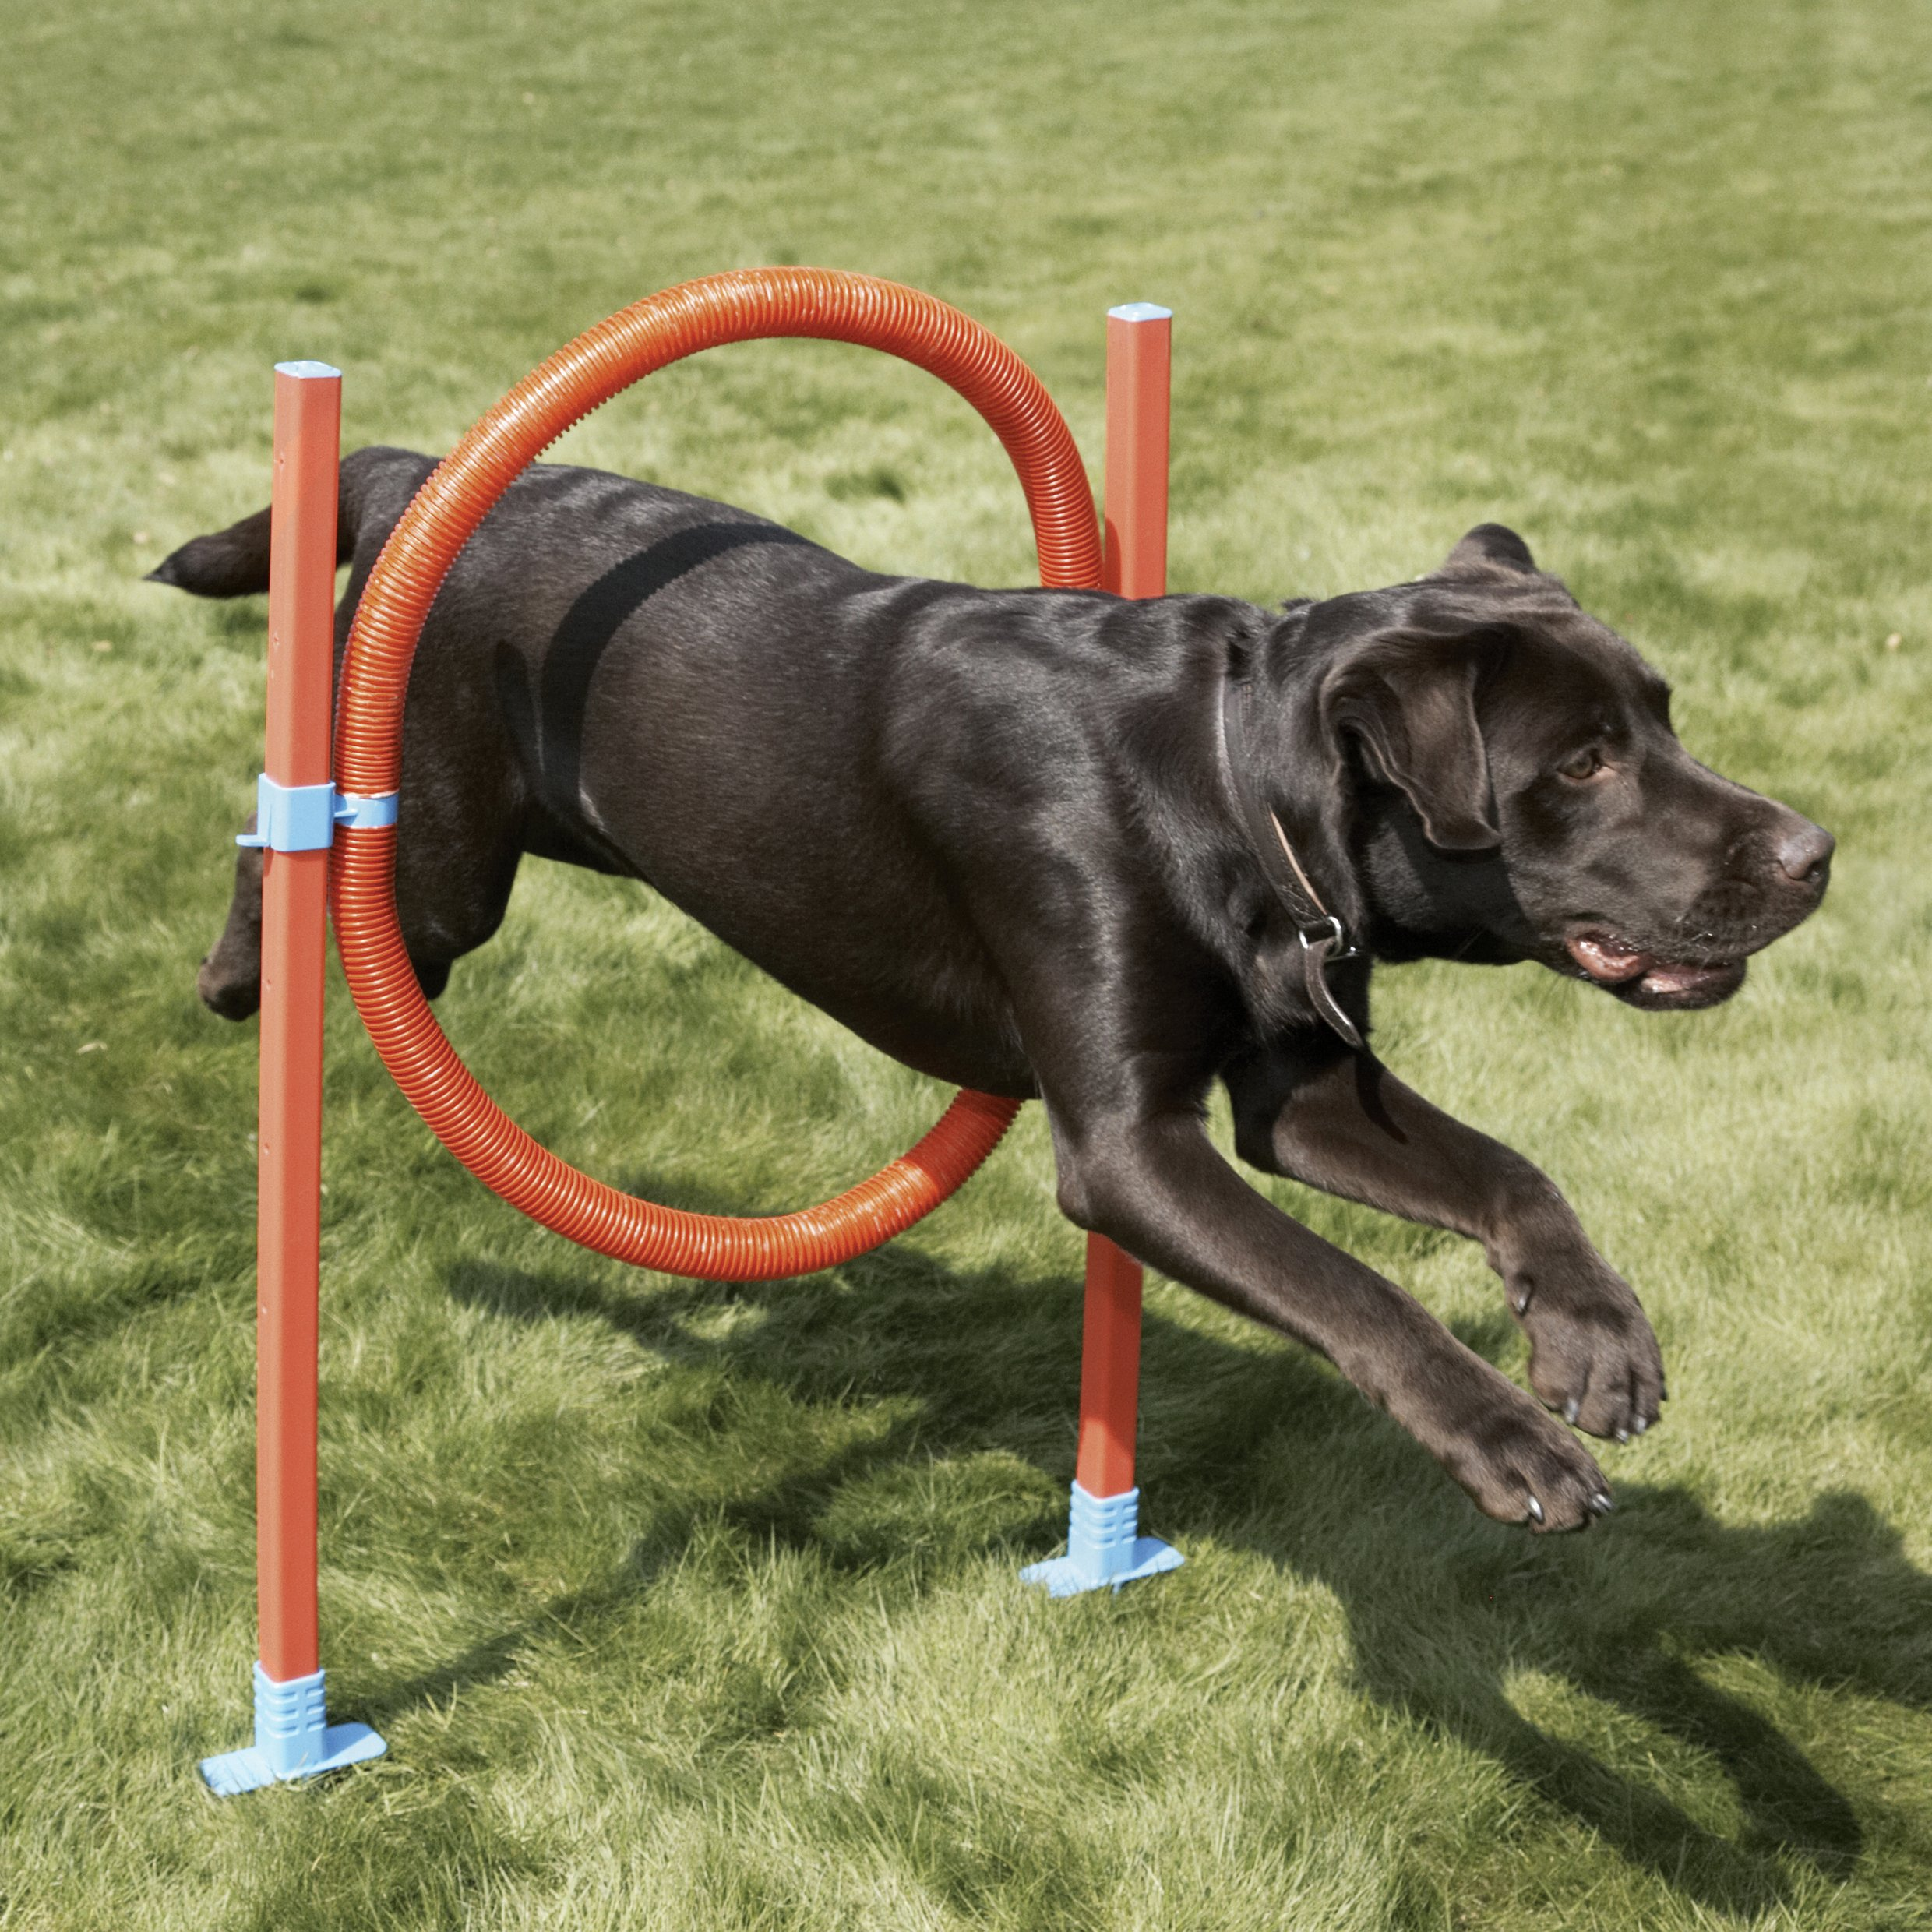 Agility Hoop Jump - Dog play & exercise toy by Rosewood Pet